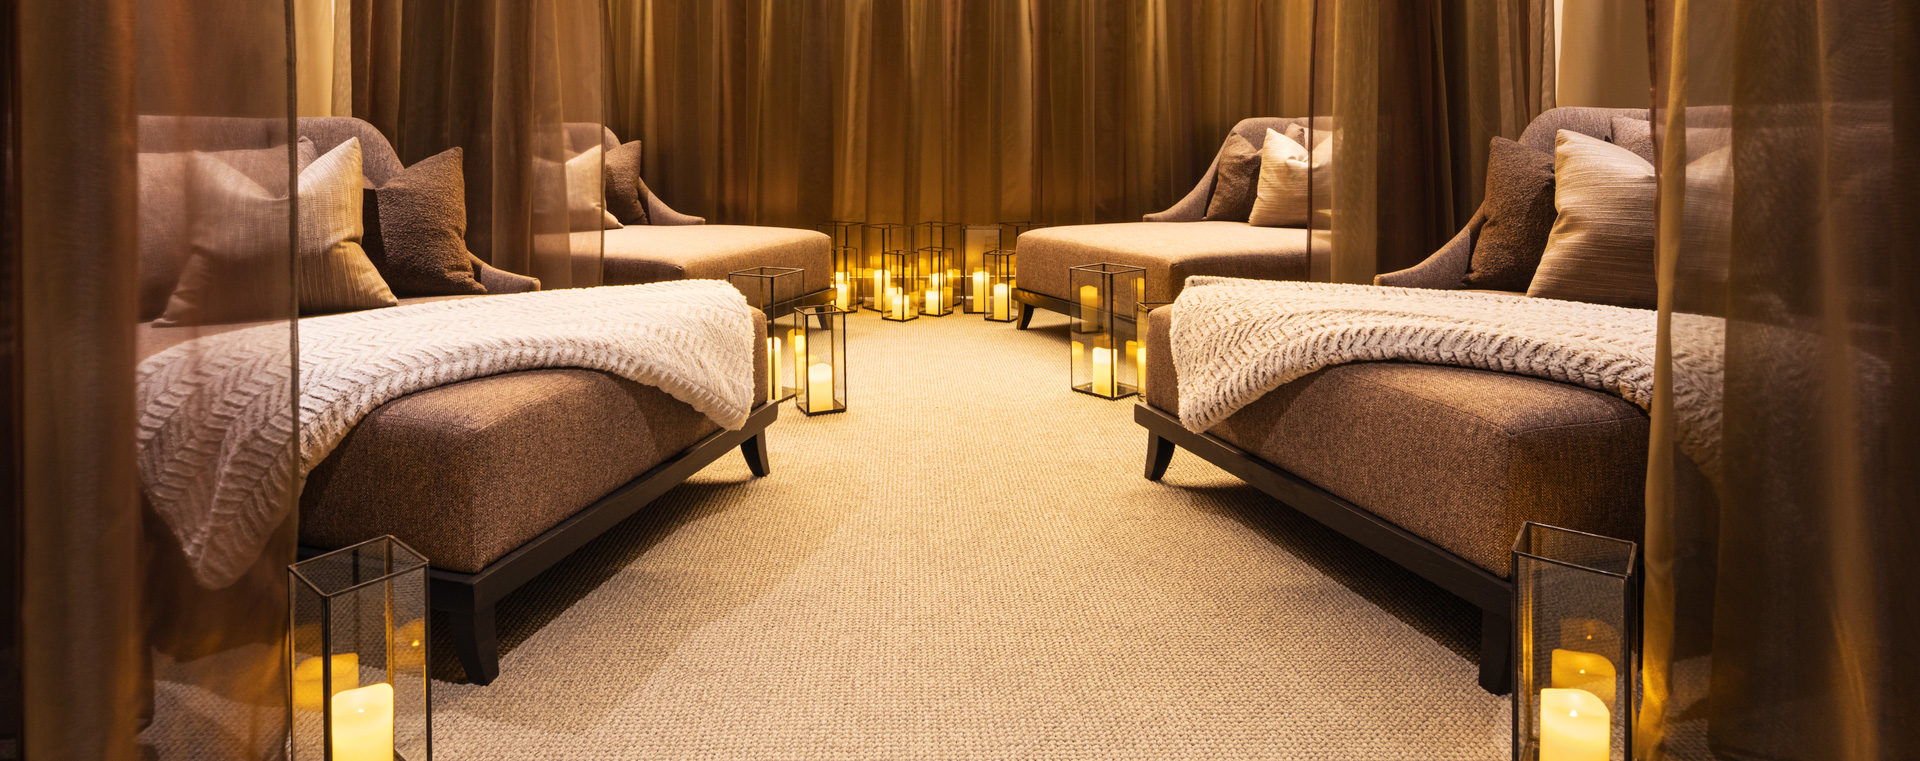 Anda Spa Package at Hotel Ivy, A Luxury Collection Hotel, Minneapolis